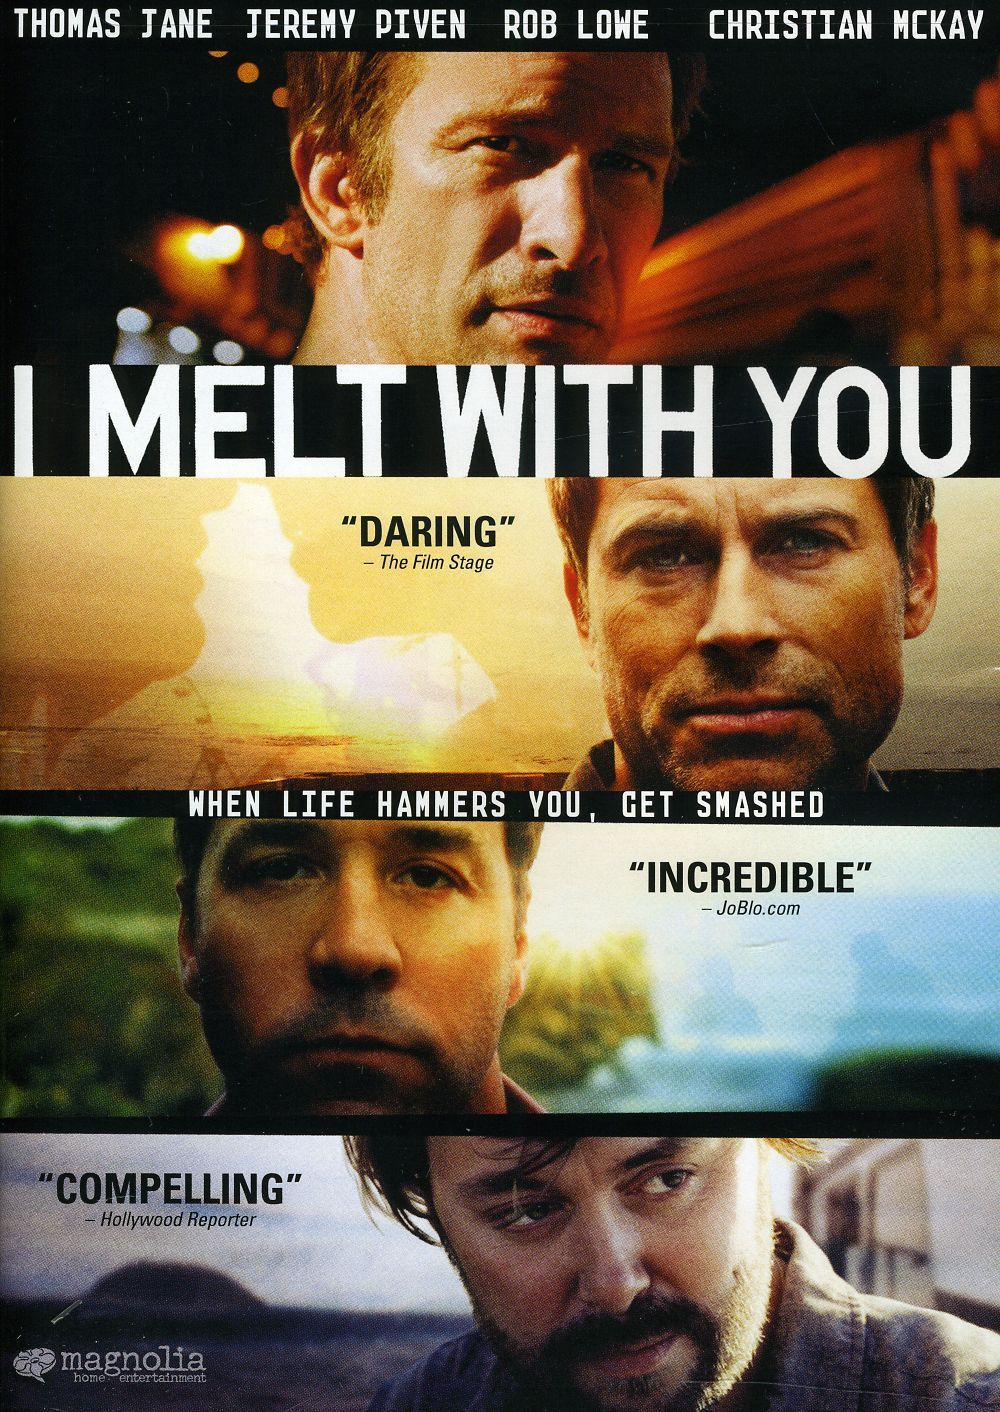 I Melt with You - Film (2011)